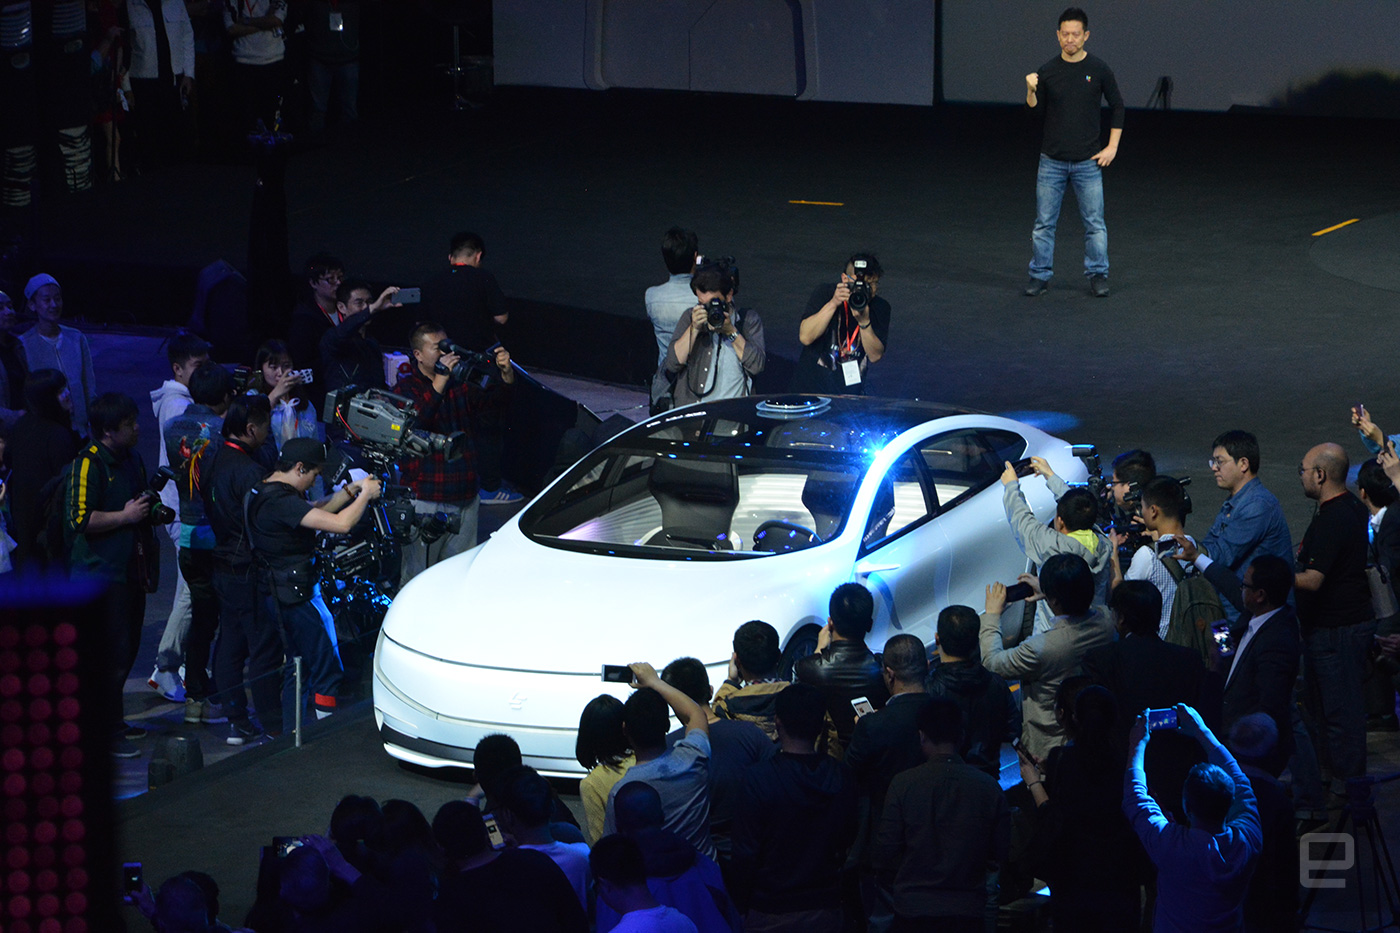 LeEco CEO Jia Yueting watches from afar while the LeSEE electric car drives itself on the stage.